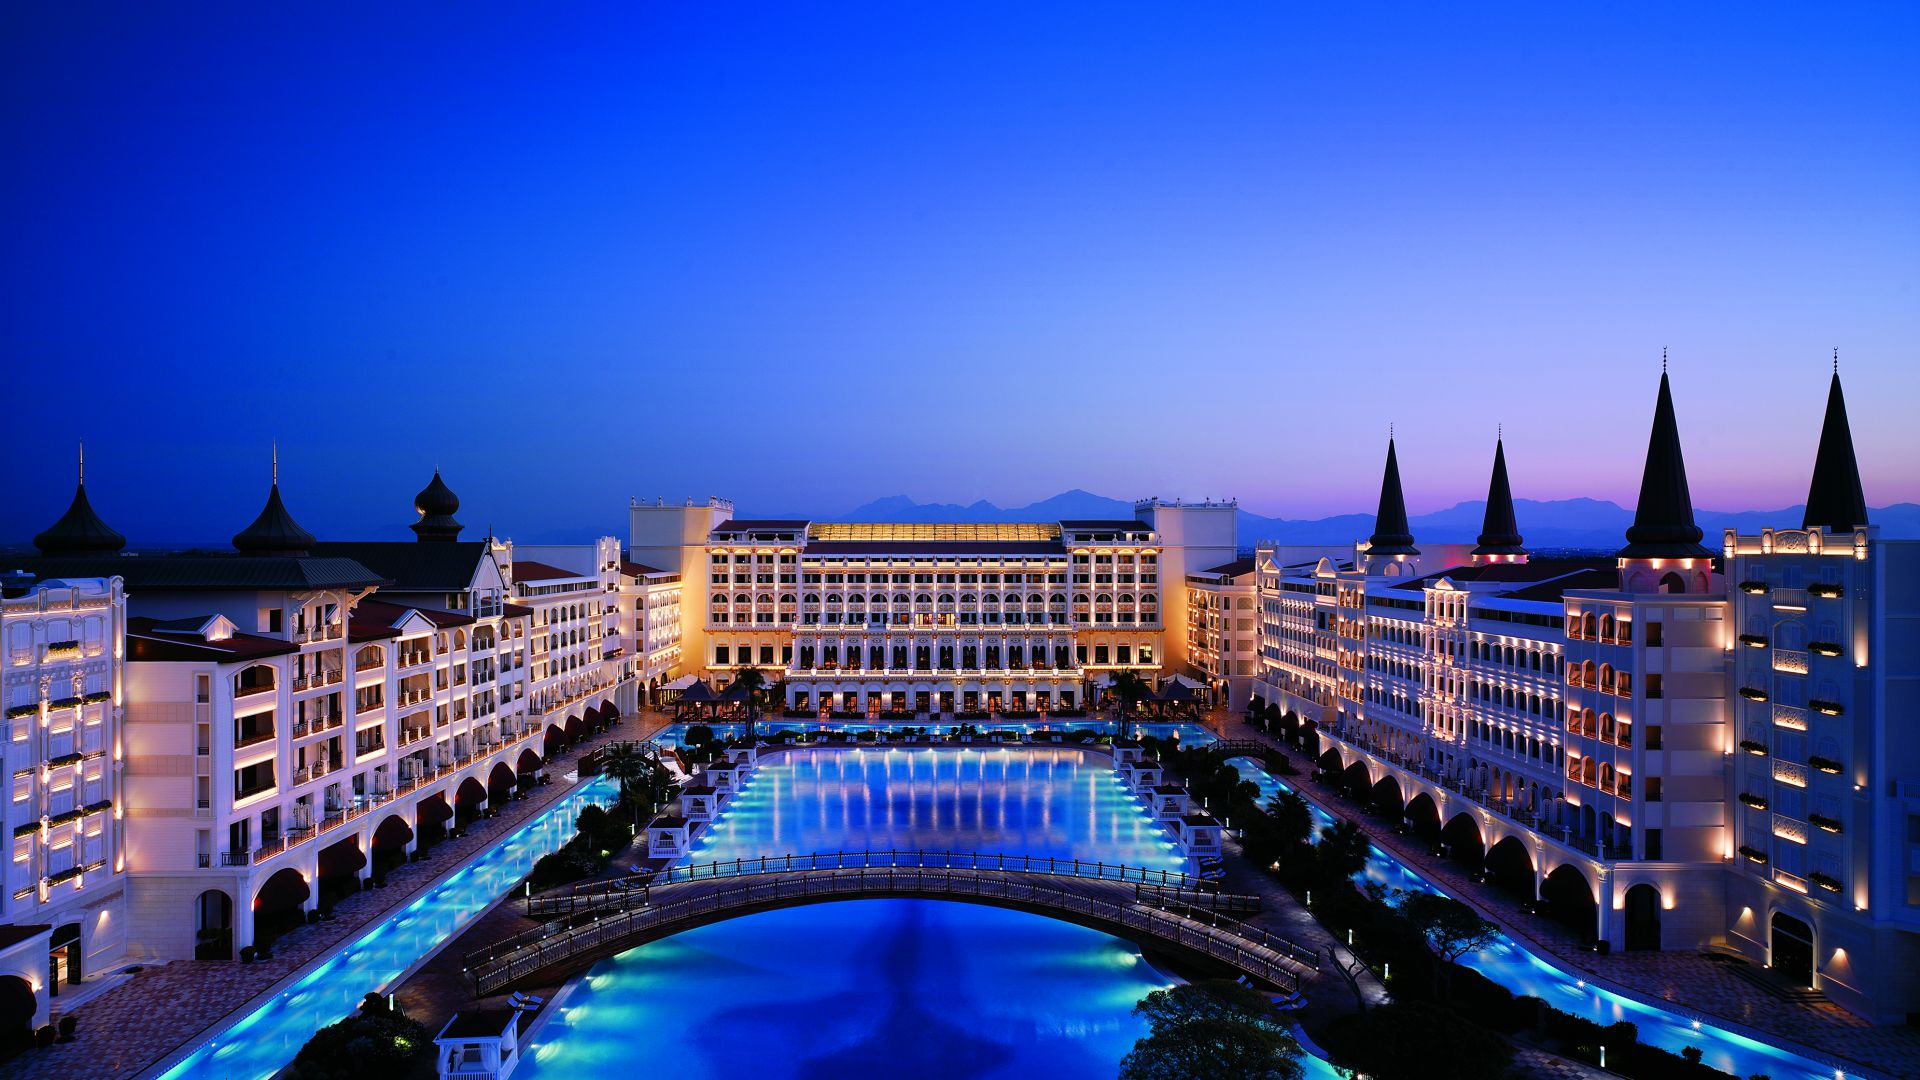 Mardan Palace, Turkey, Best hotels, tourism, travel, resort, booking, vacation (horizontal)